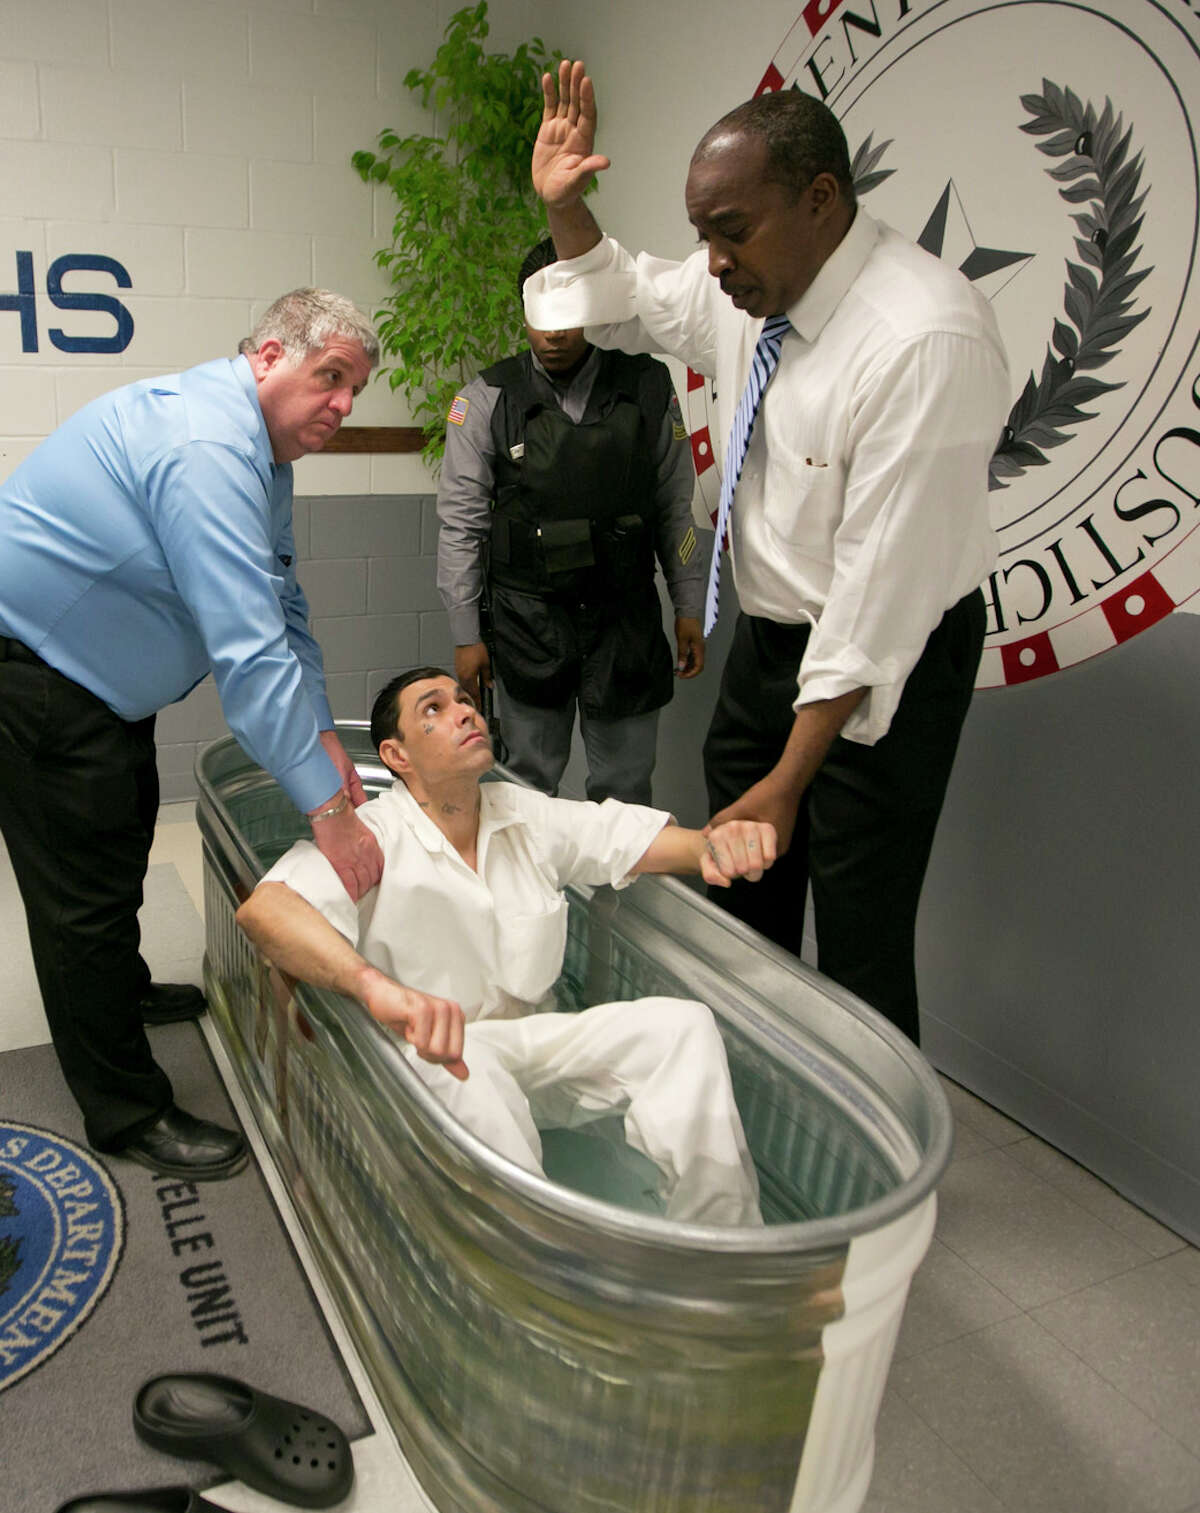 One of three prison inmates is baptized Friday at the Texas Department of Criminal Justice's Estelle High-Security Unit in Huntsville.